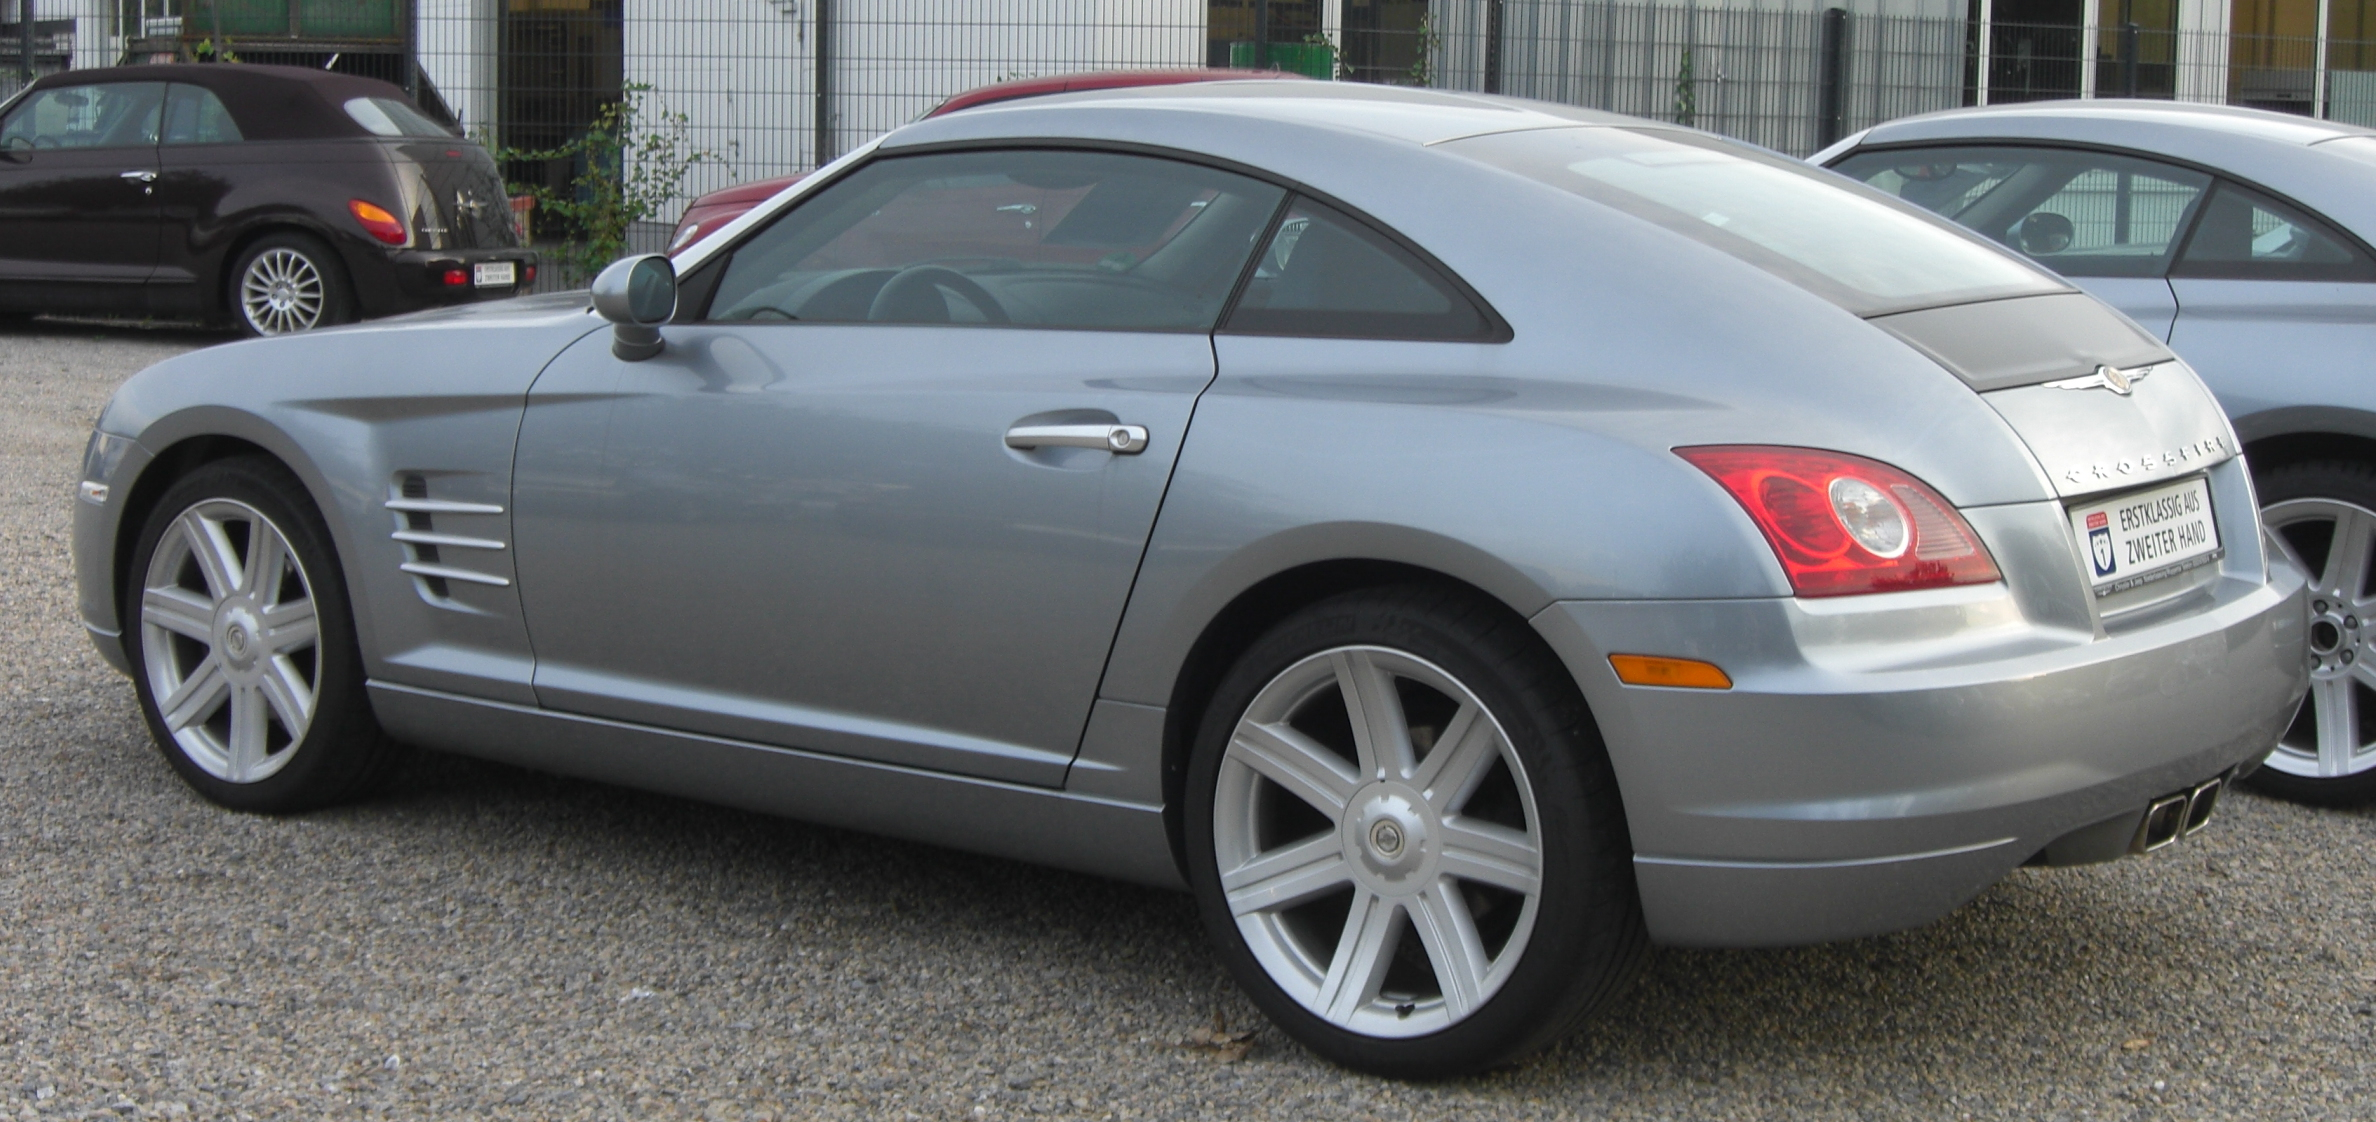 2008 Chrysler Crossfire #11